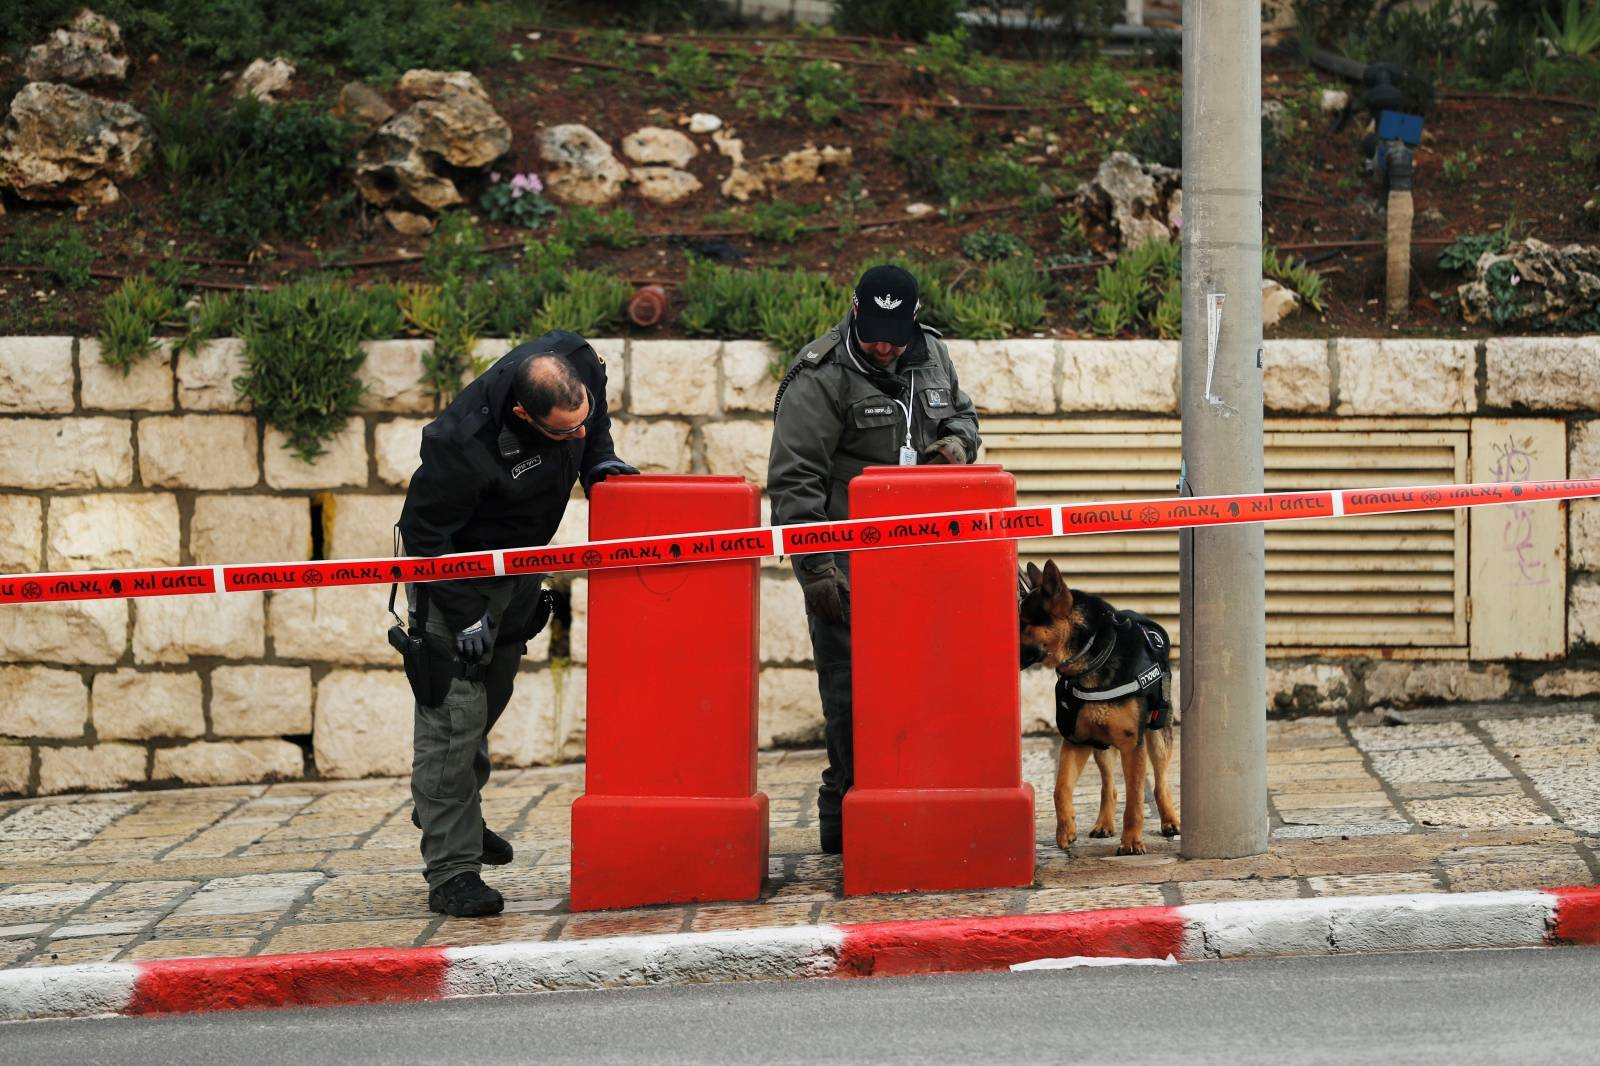 Israeli policemen and a police dog patrol the area as the city gears up to host a Holocaust memorial event at Yad Vashem, in Jerusalem